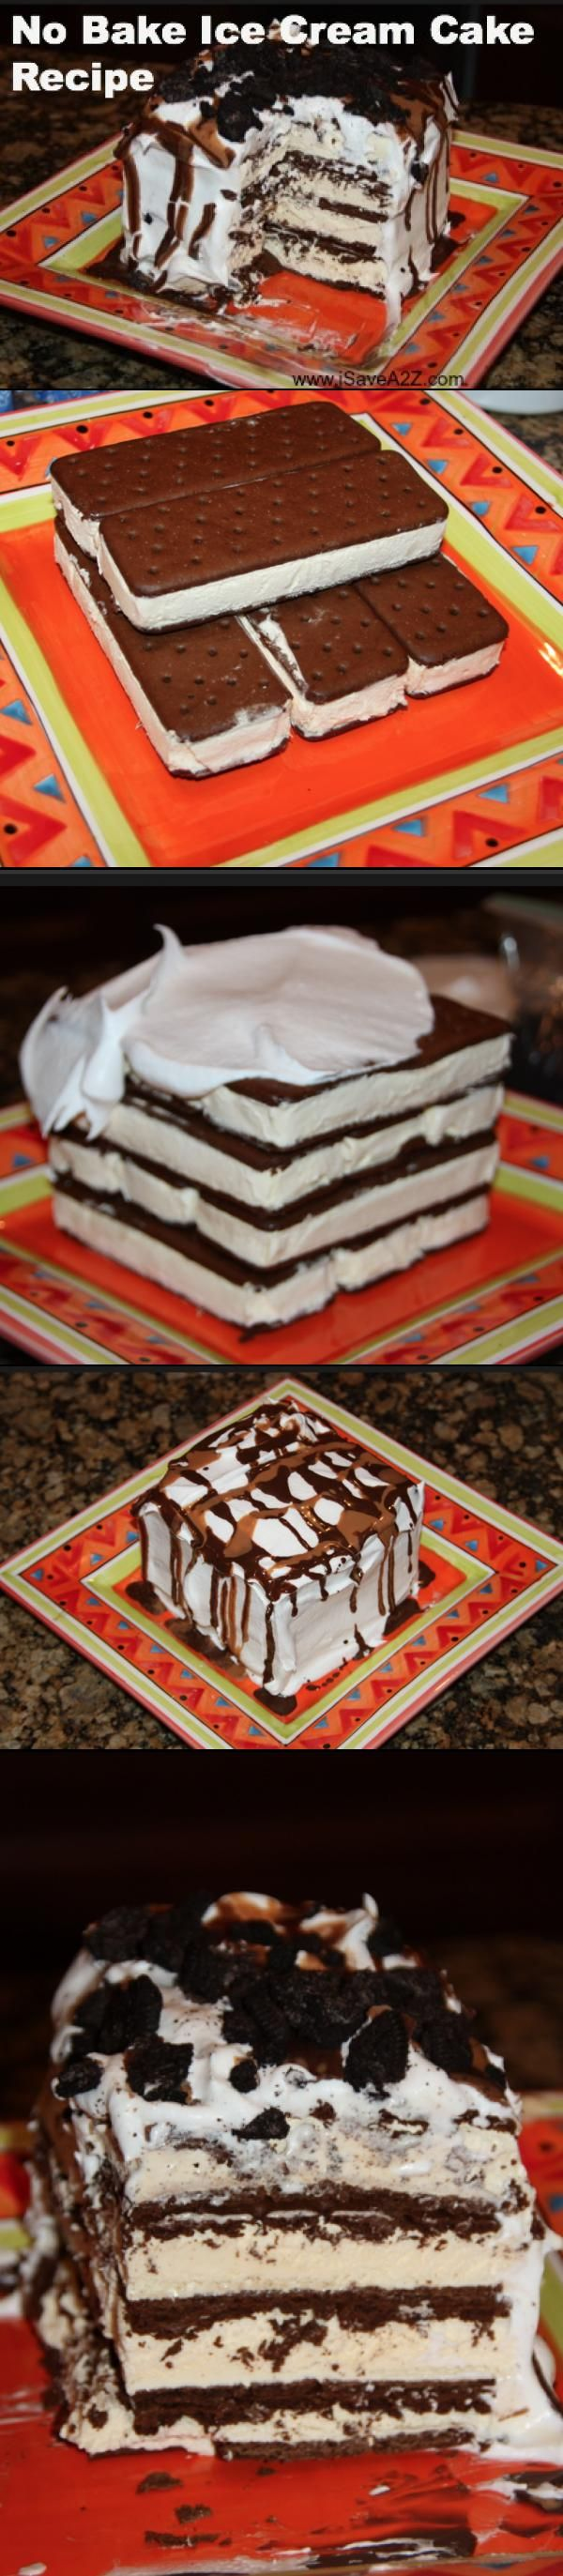 SO DELICIOUS!!! NO BAKING REQD!!  Ice Cream Sandwich cake that is to die for!!!